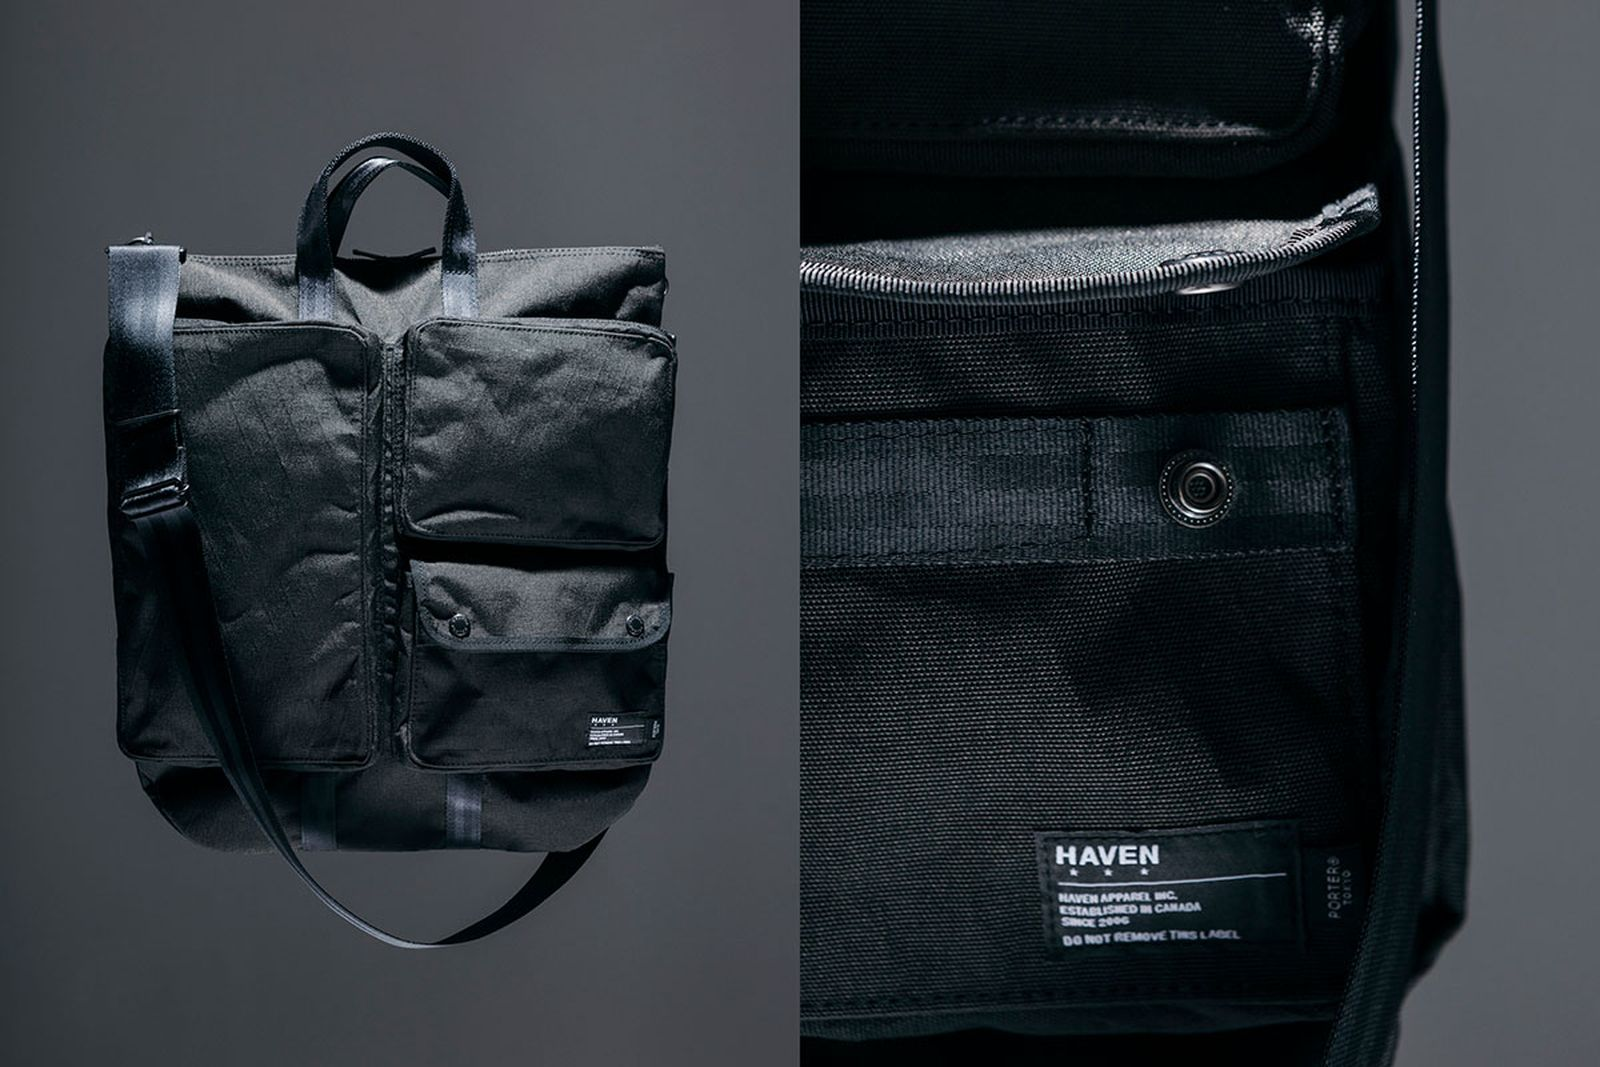 haven porter bag collection